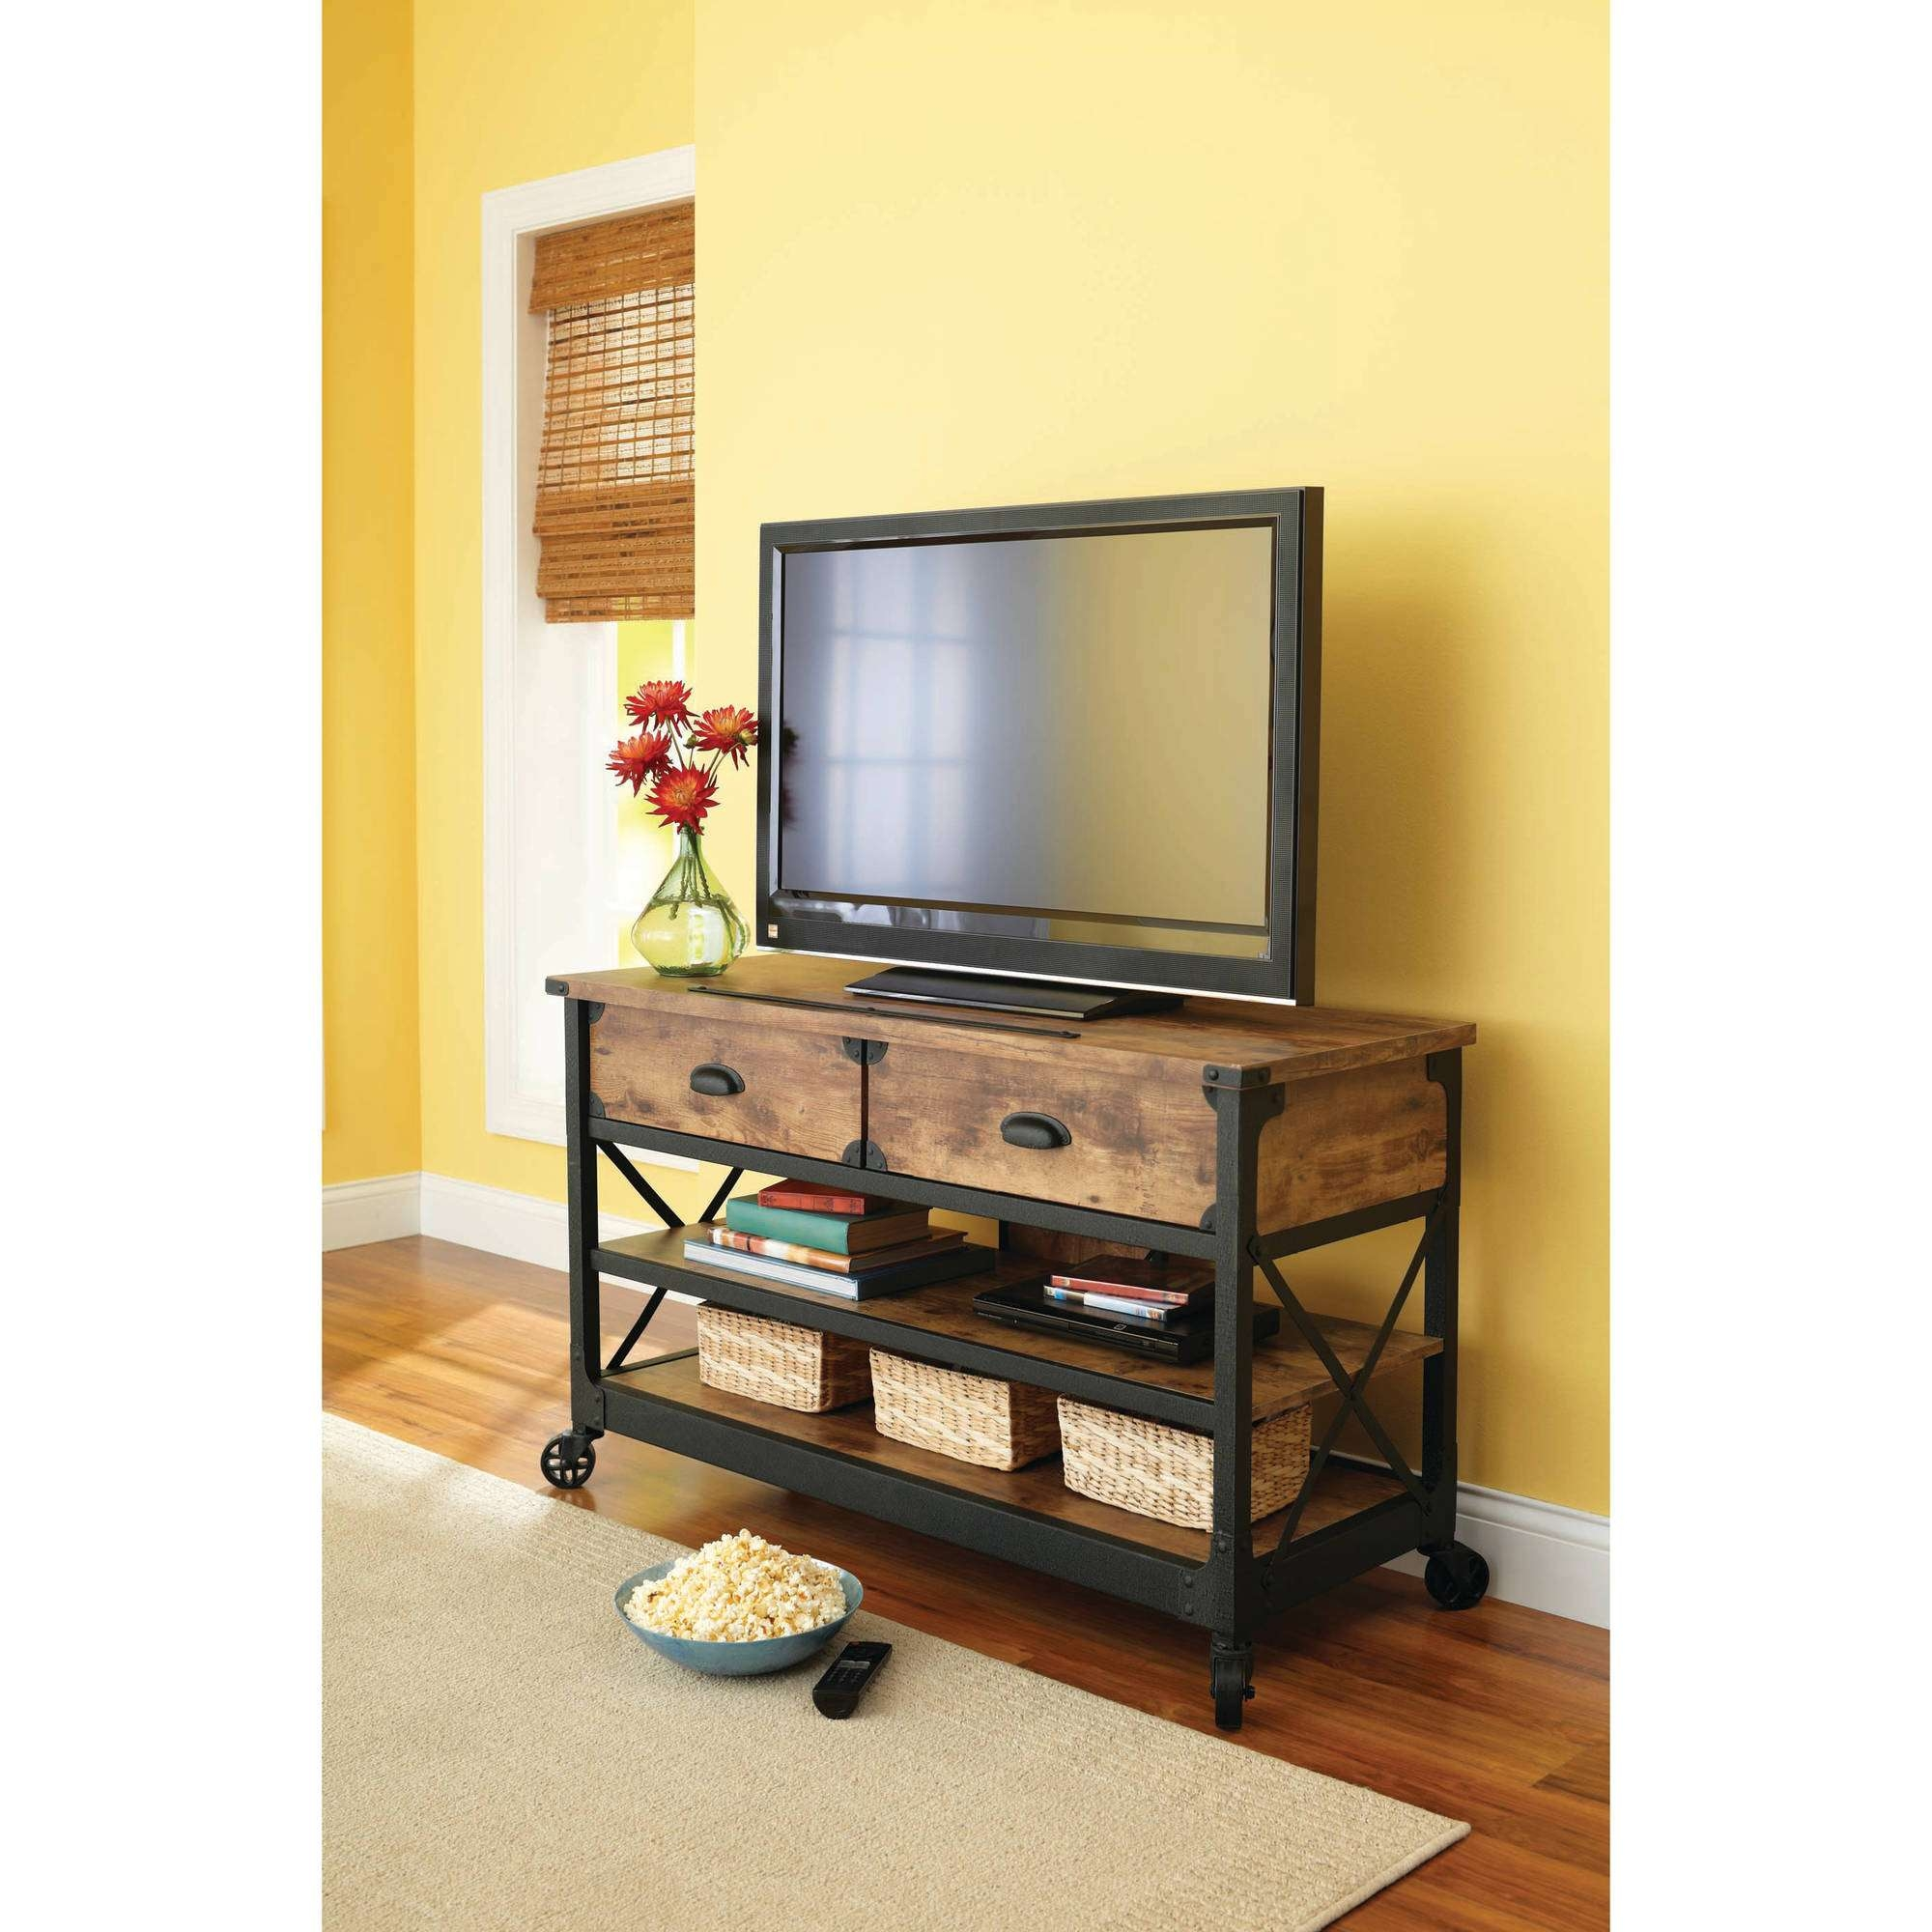 Tv : Country Tv Stands Stunning Country Door Tv Stands' Gripping Throughout French Country Tv Stands (View 15 of 15)